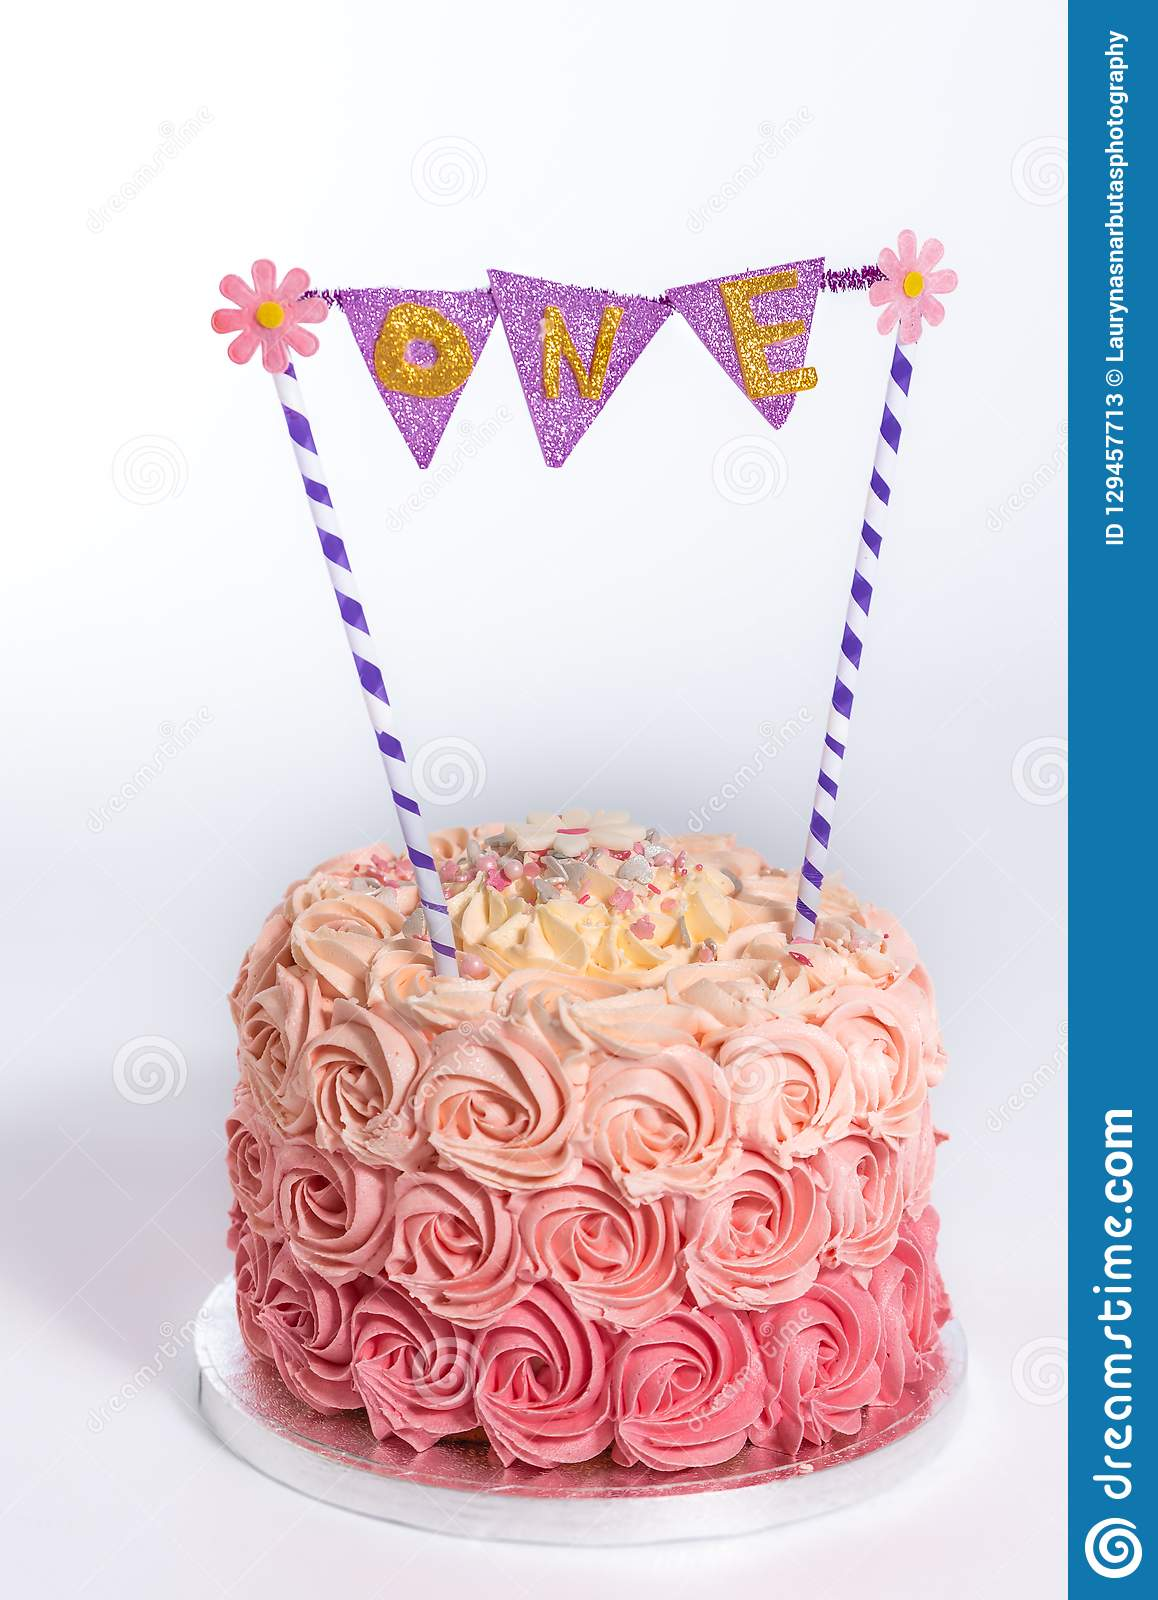 Outstanding Birthday Smash Cake In White Background Stock Image Image Of Birthday Cards Printable Riciscafe Filternl